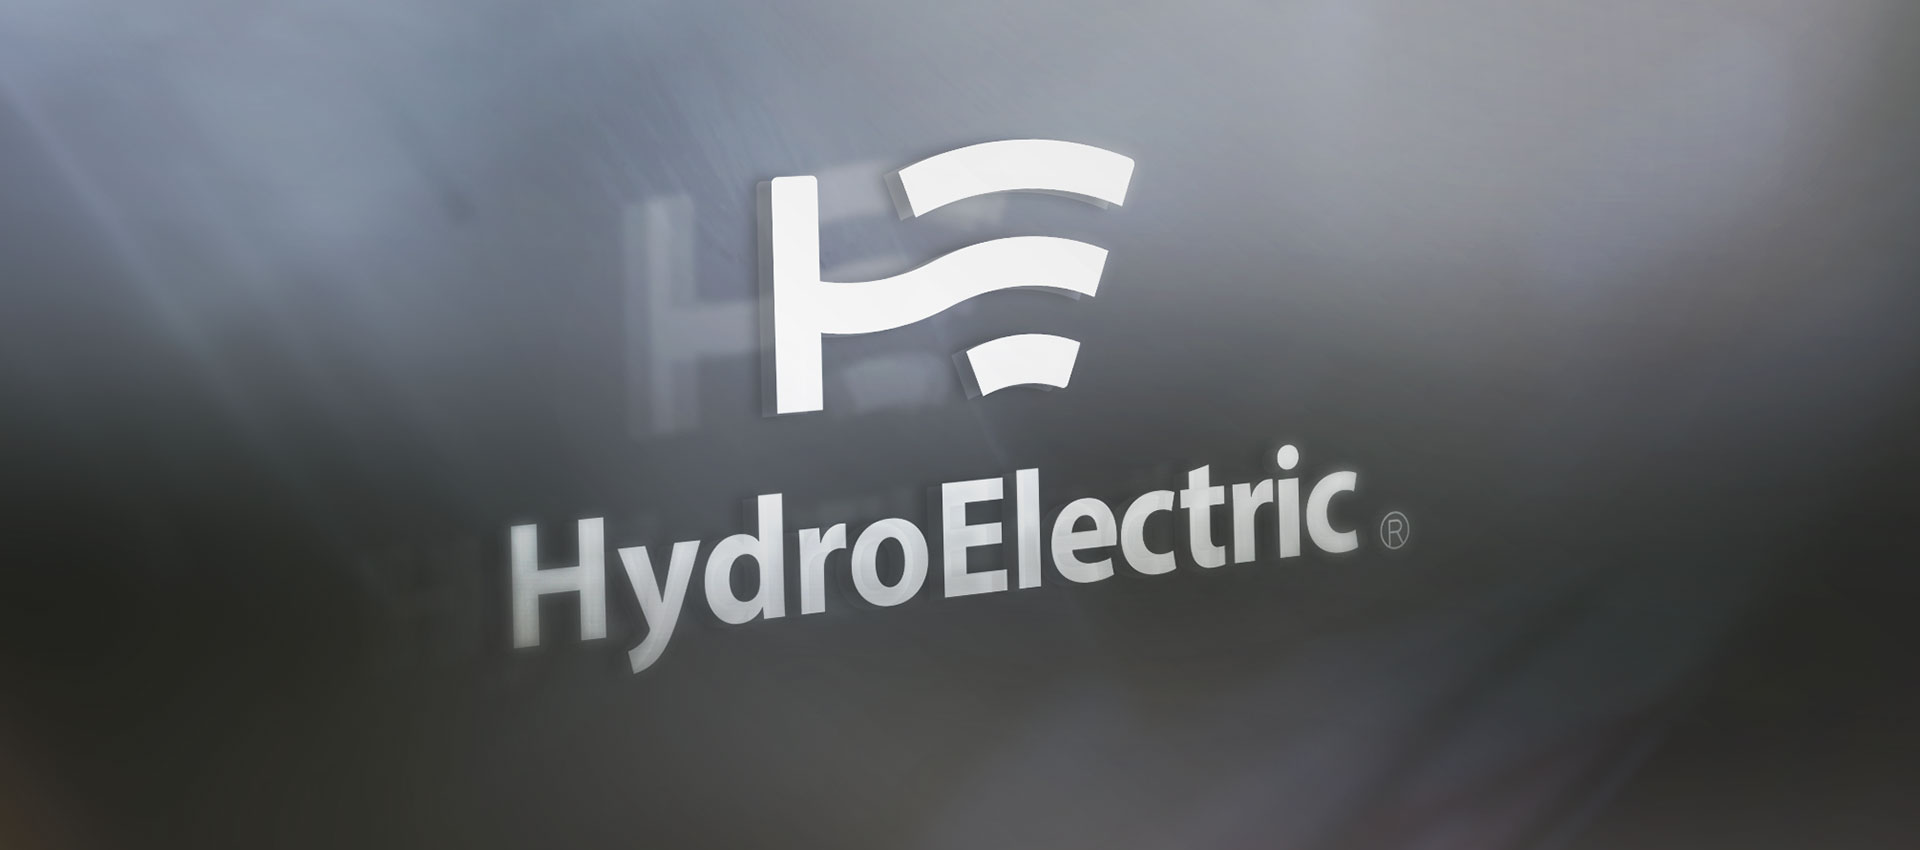 hydro electric logo perspective